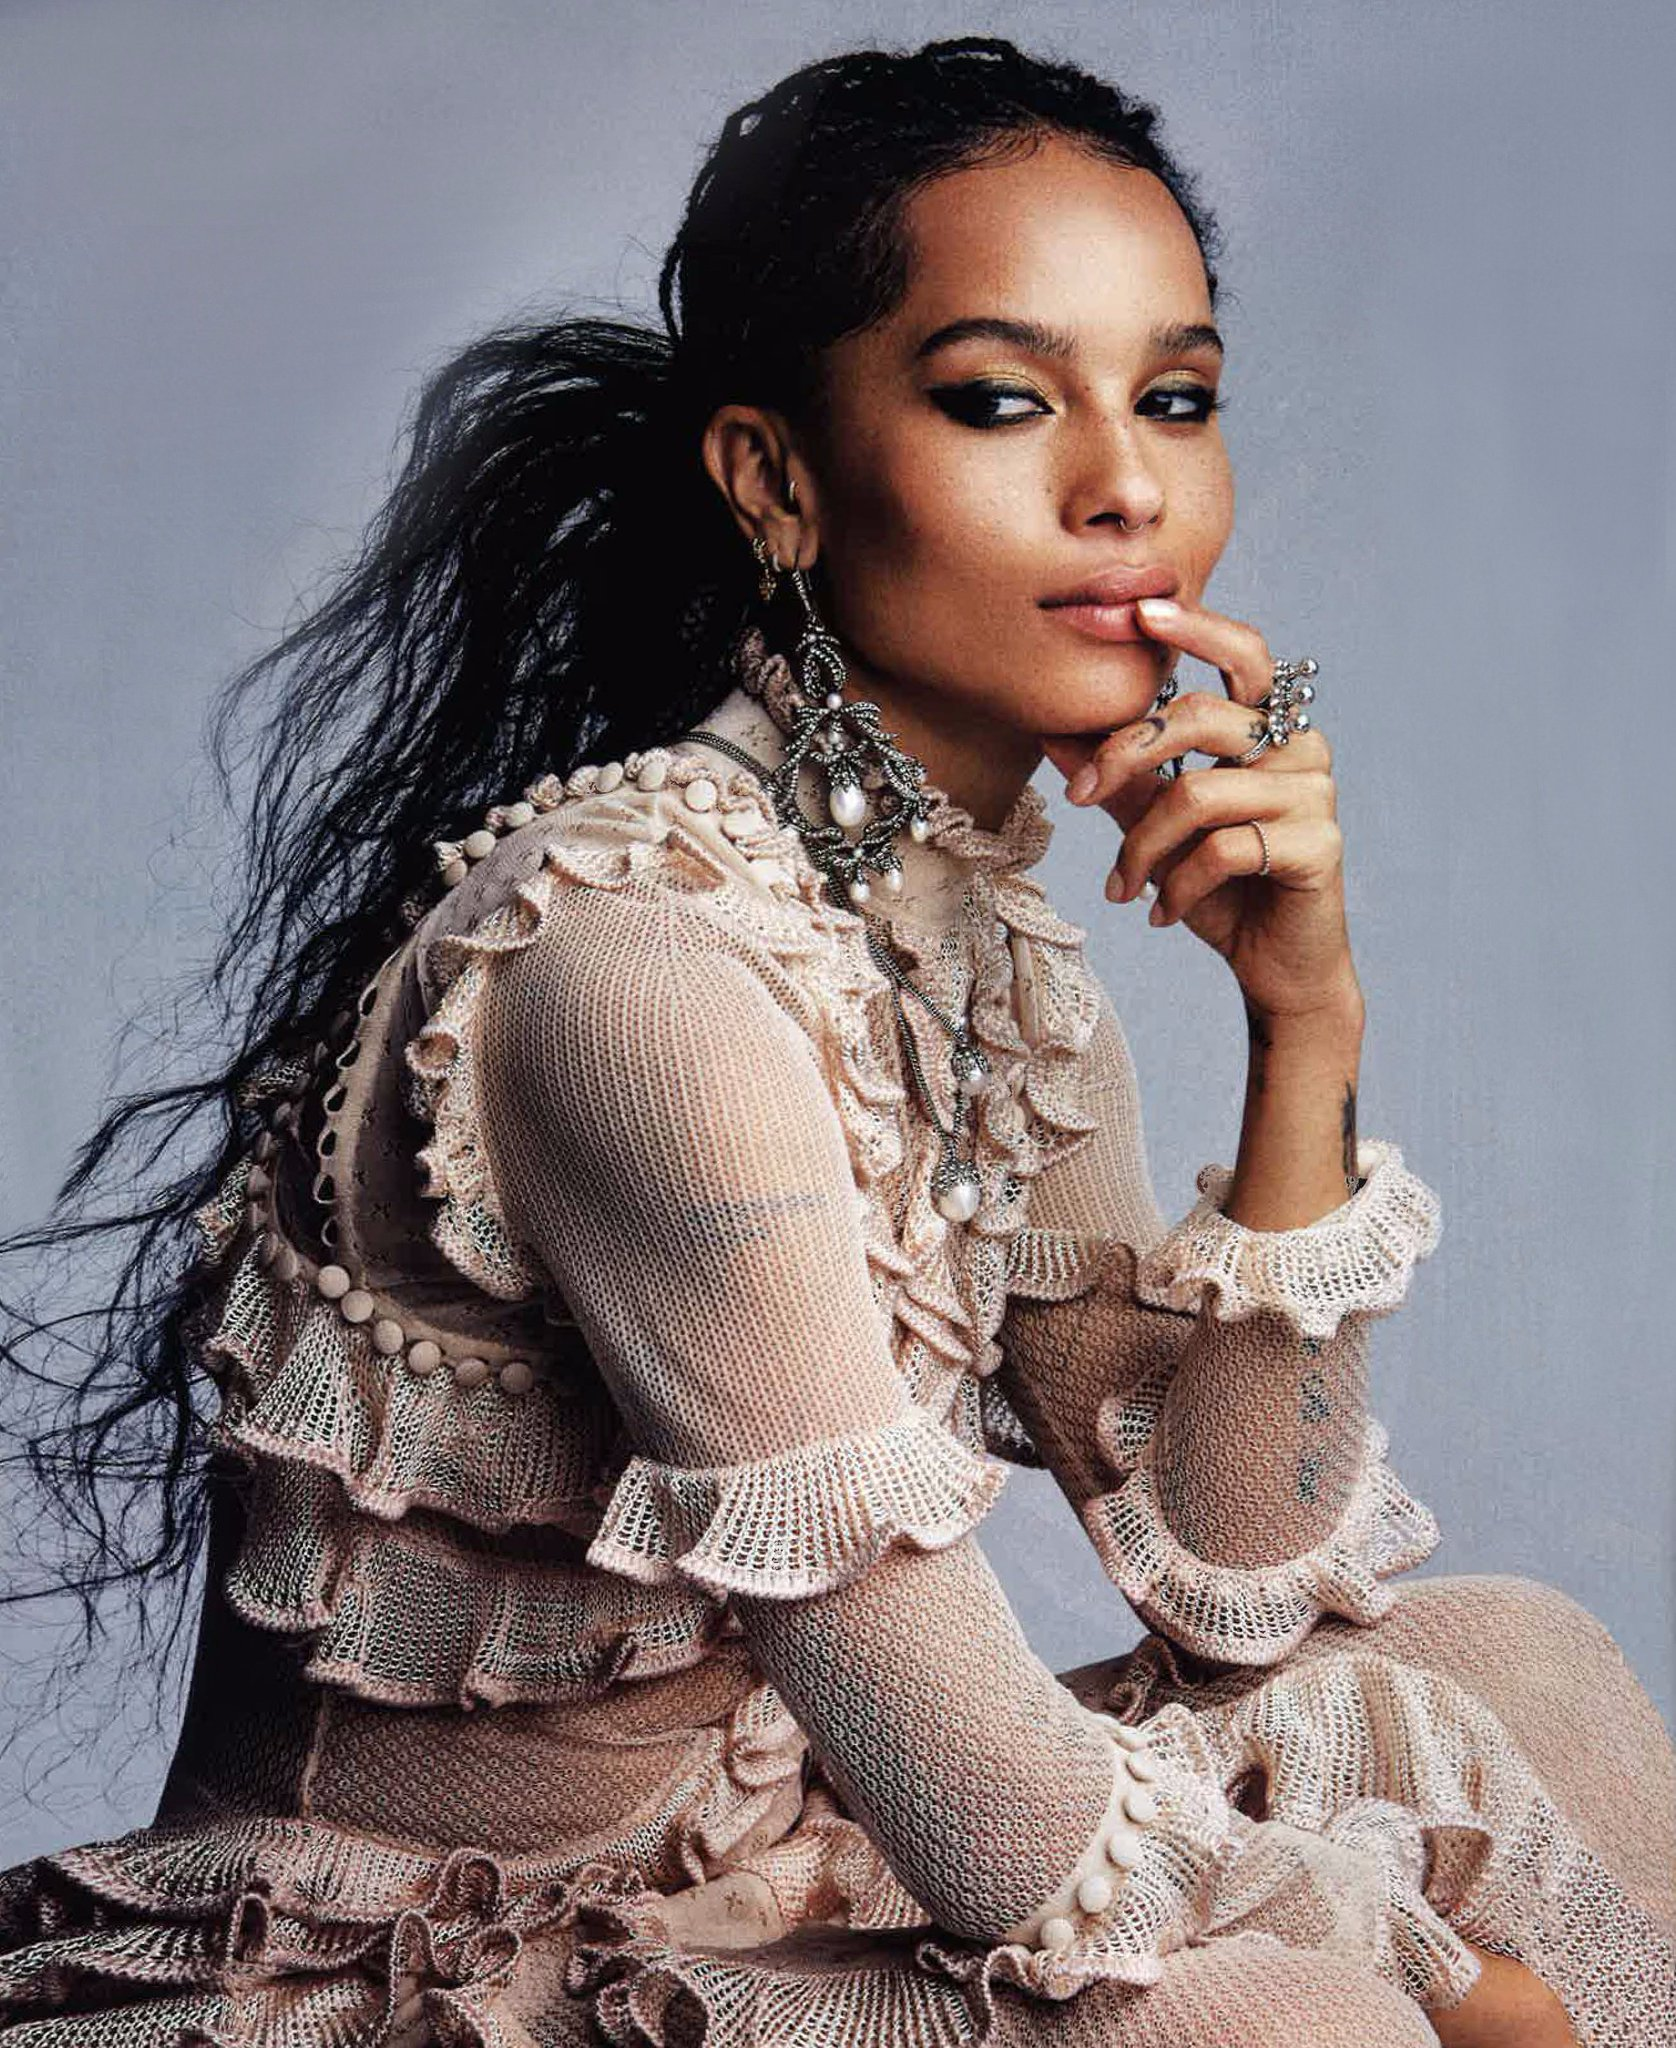 Seen inside @voguemagazine : @ZoeKravitz wearing the Alexander McQueen SS16 lace knitted ruffle dress https://t.co/IFXaPlSKva